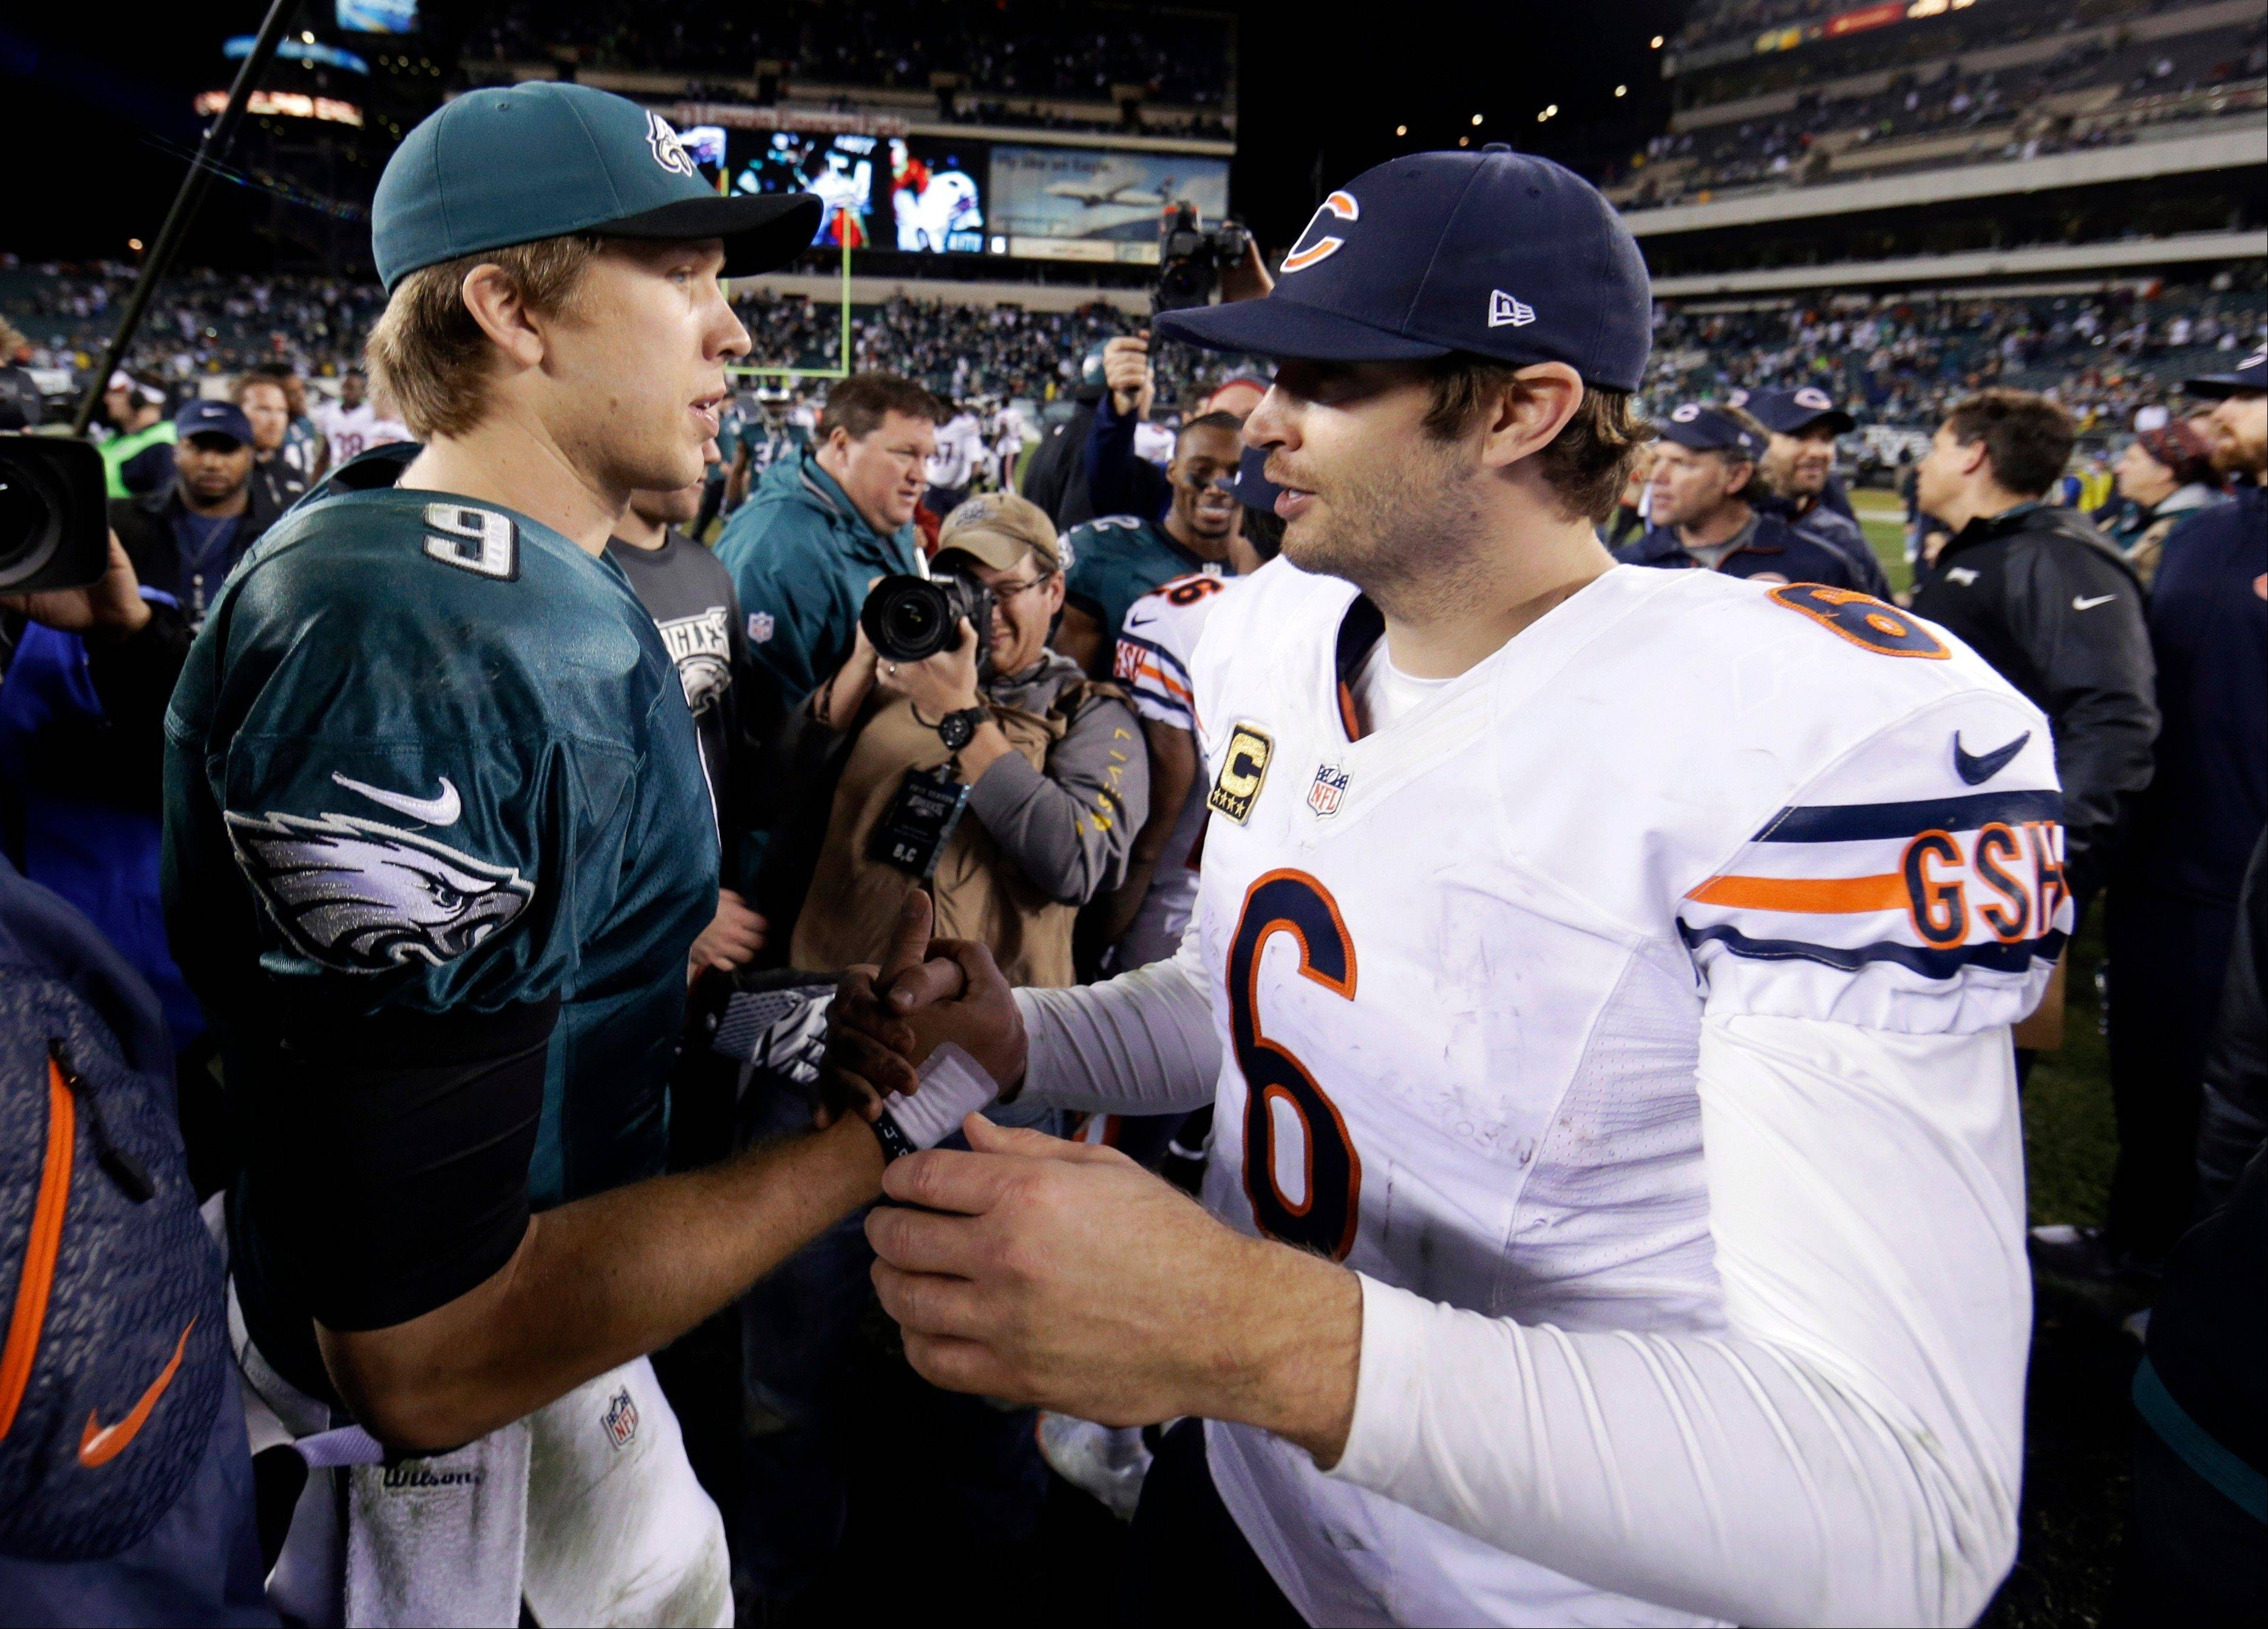 Quarterback Jay Cutler greets his counterpart, the Eagles� Nick Foles, after the Bears dropped a 54-11 decision in Philadelphia on Sunday night.